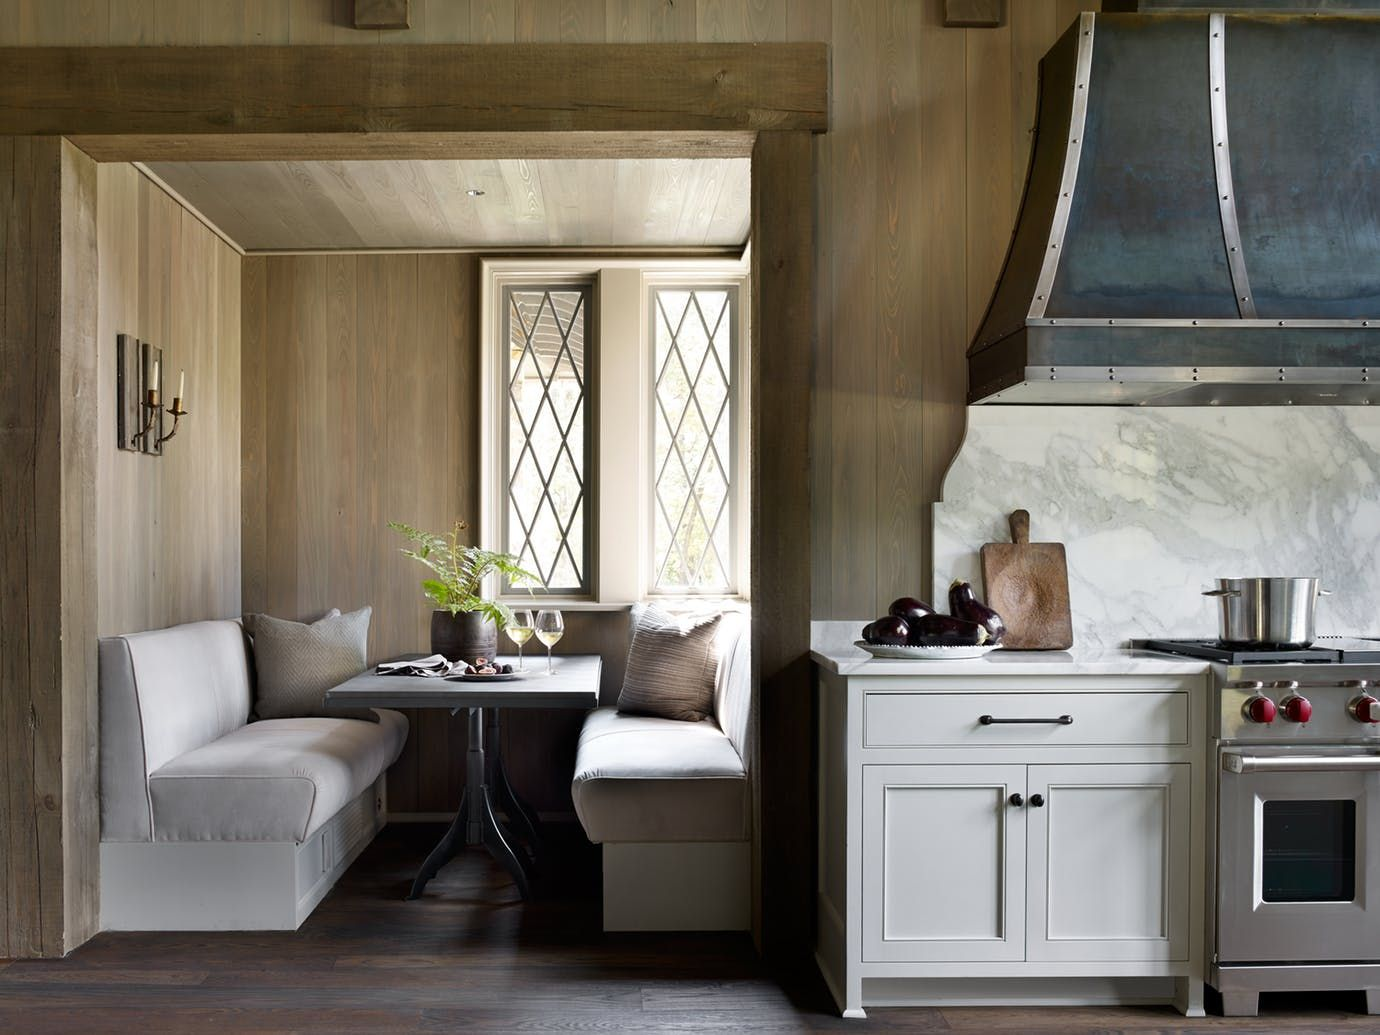 Farmhouse On Shades Creek Kitchen Dining Breakfast Room Architectural Details Modern By Jeffrey Dungan Architects